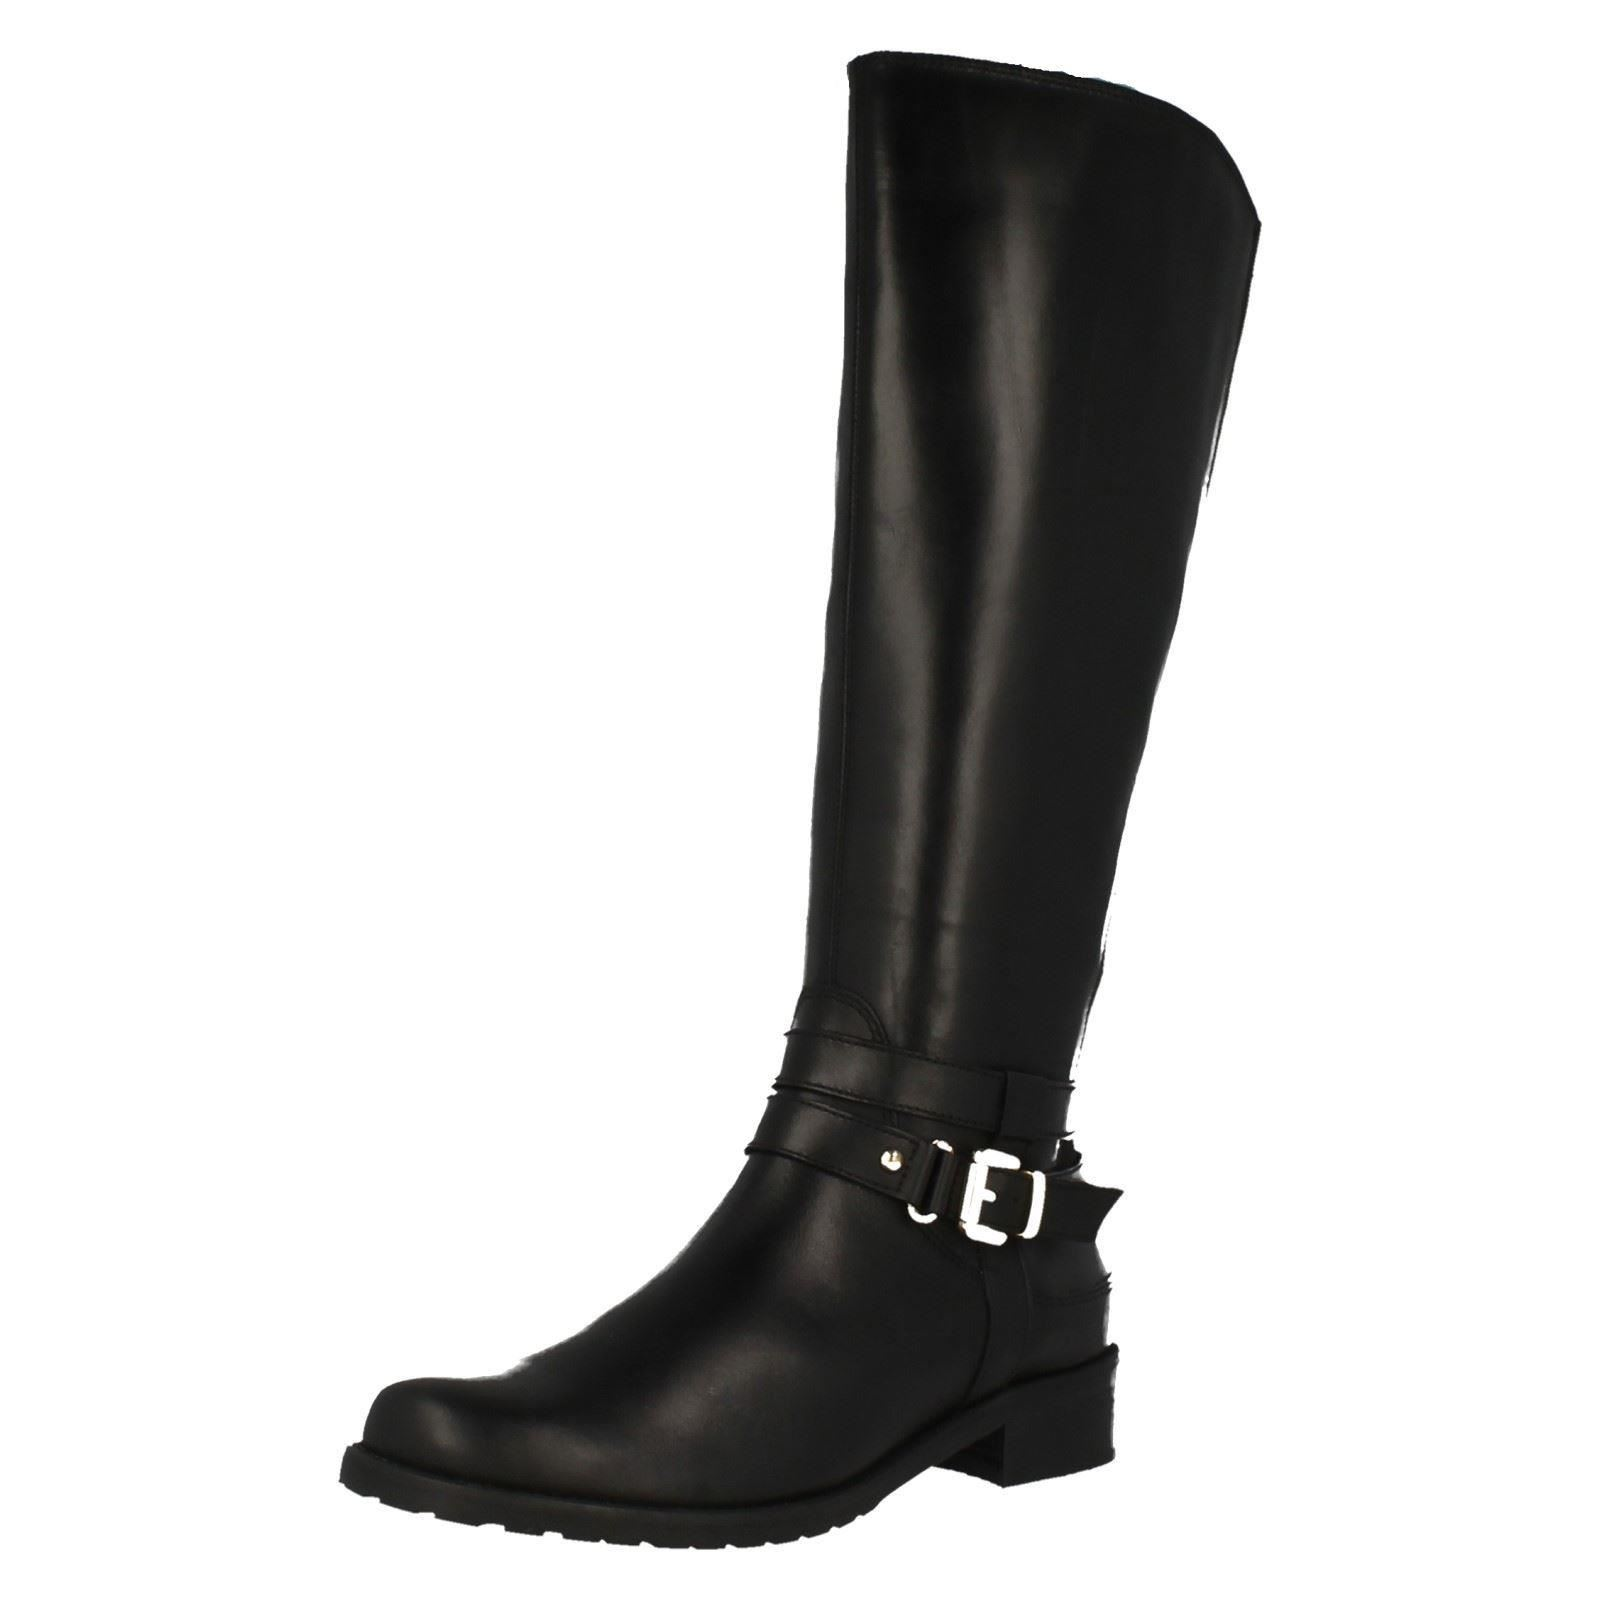 Ladies Riding Clarks Mid Calf Riding Ladies Long Boots The Style - Nessa Abbey f63acd